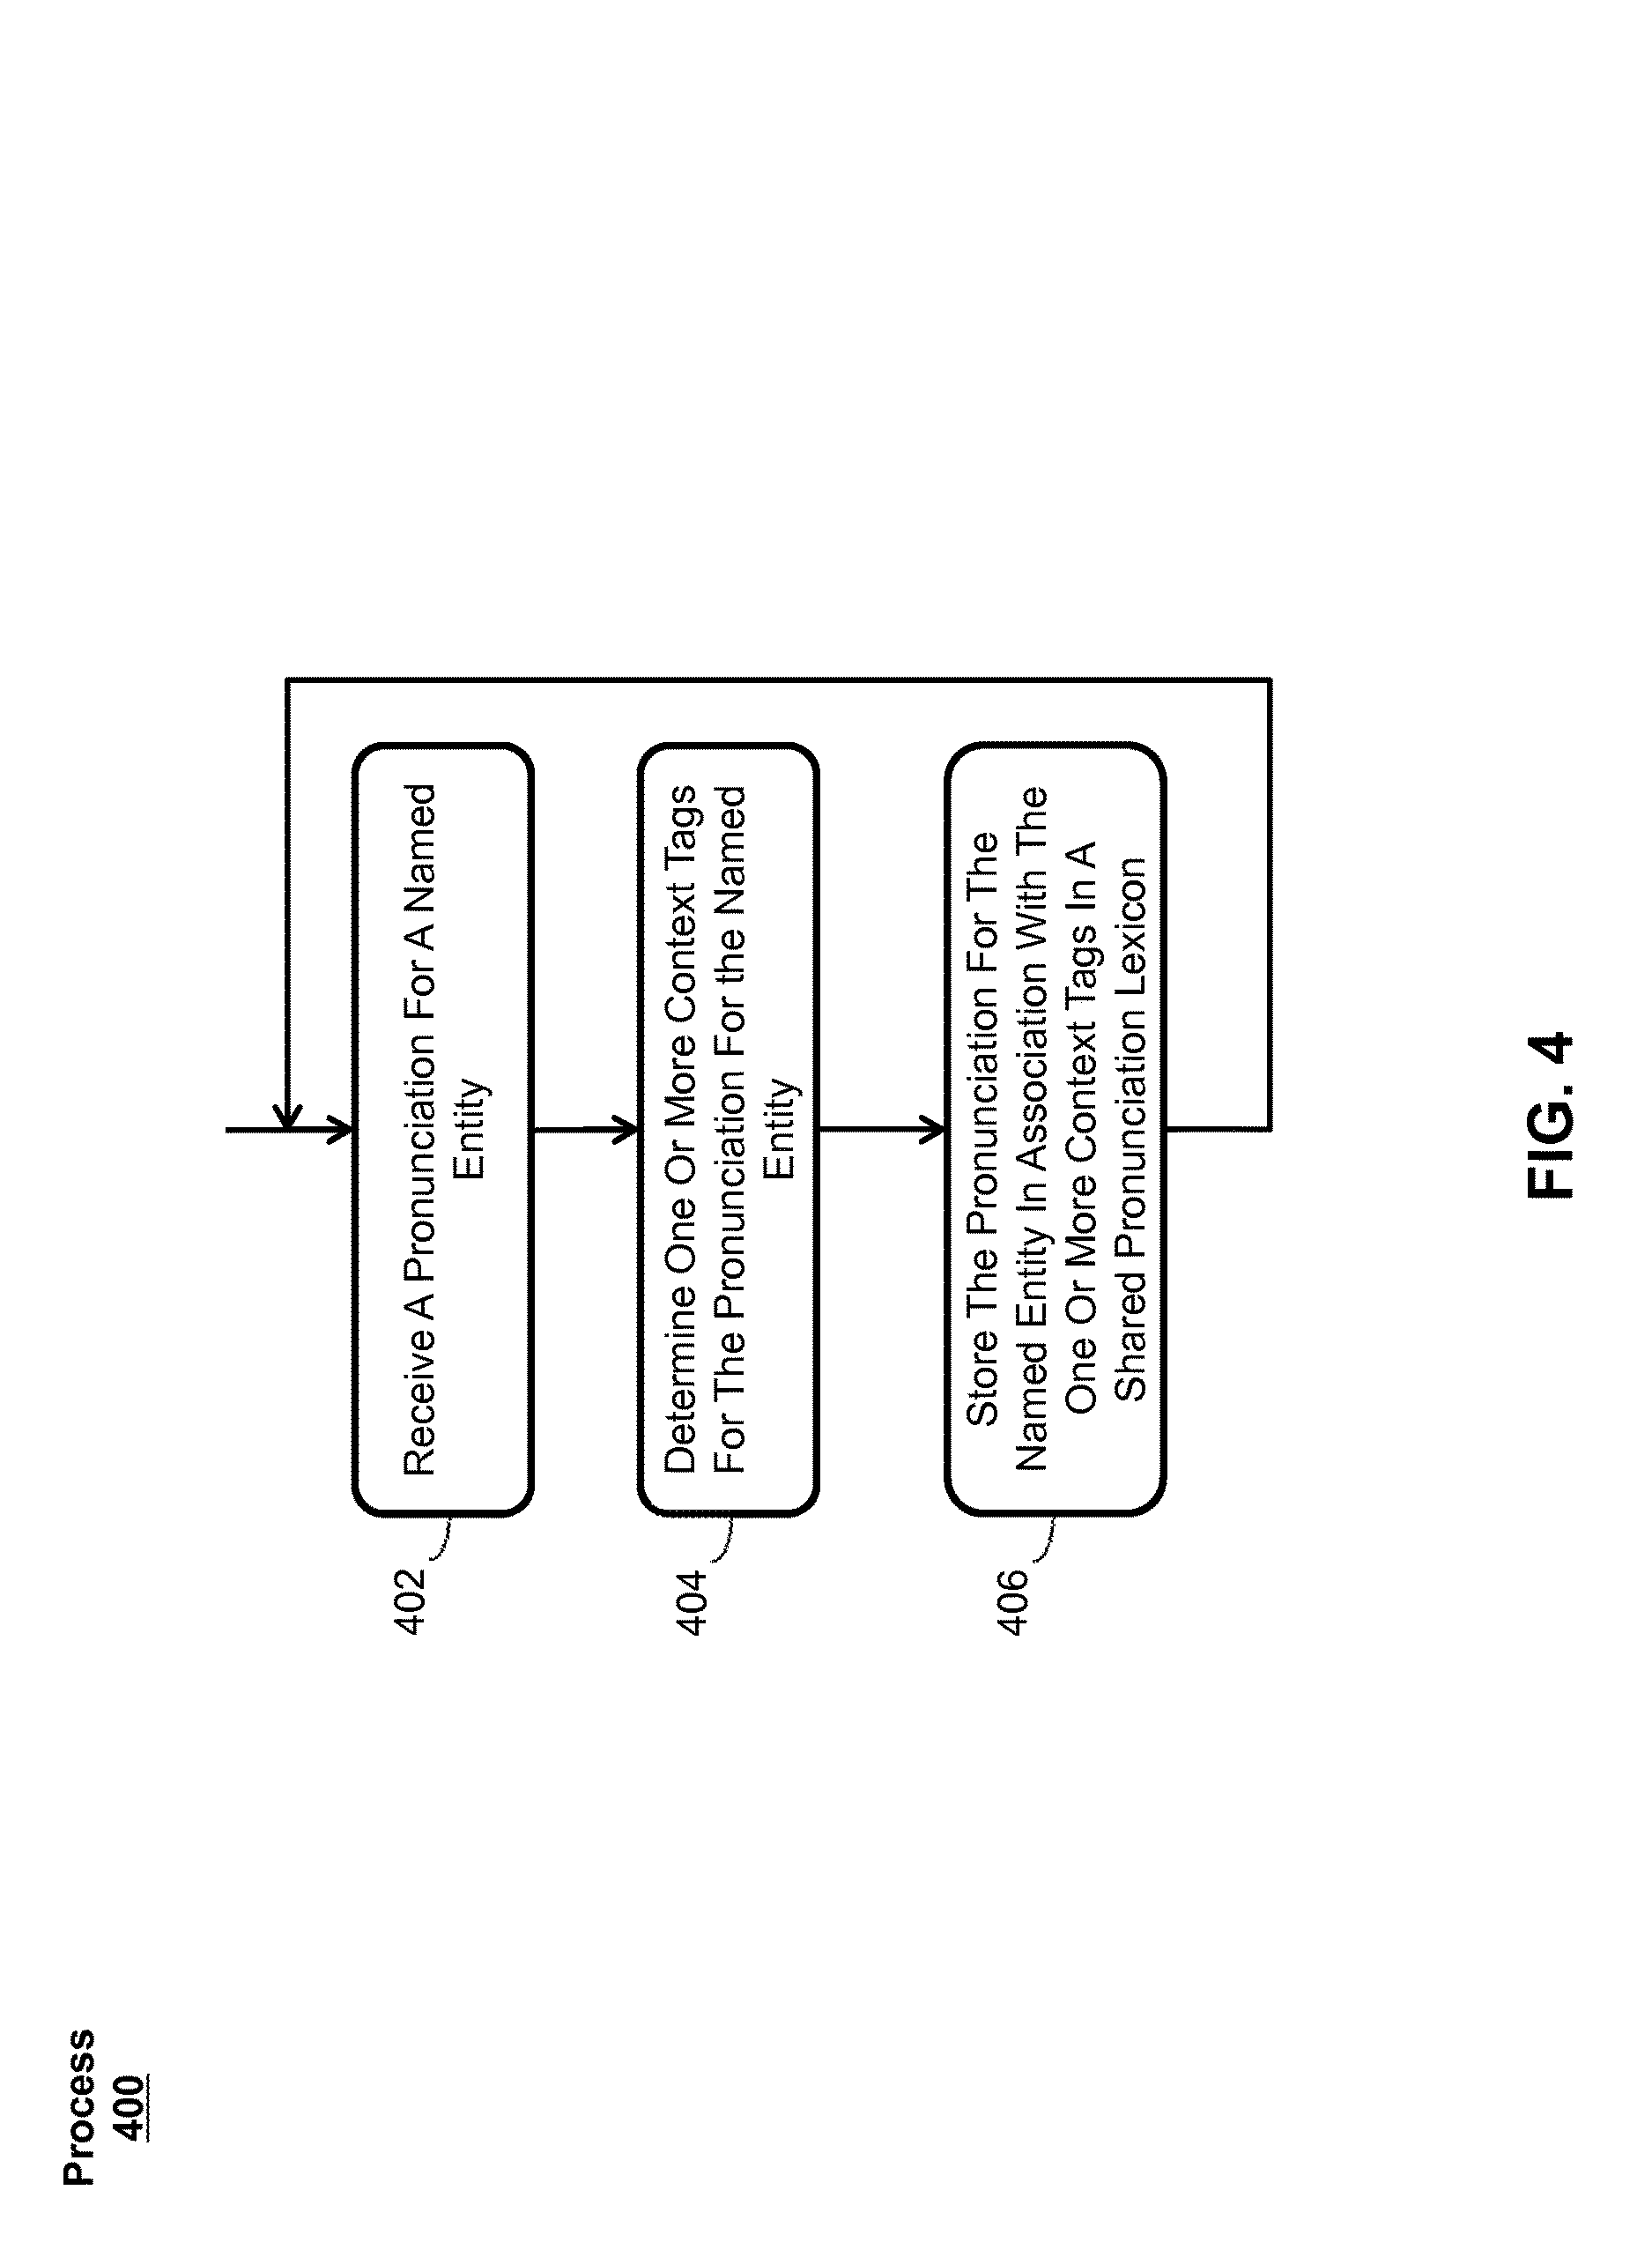 US9646609B2 - Caching apparatus for serving phonetic